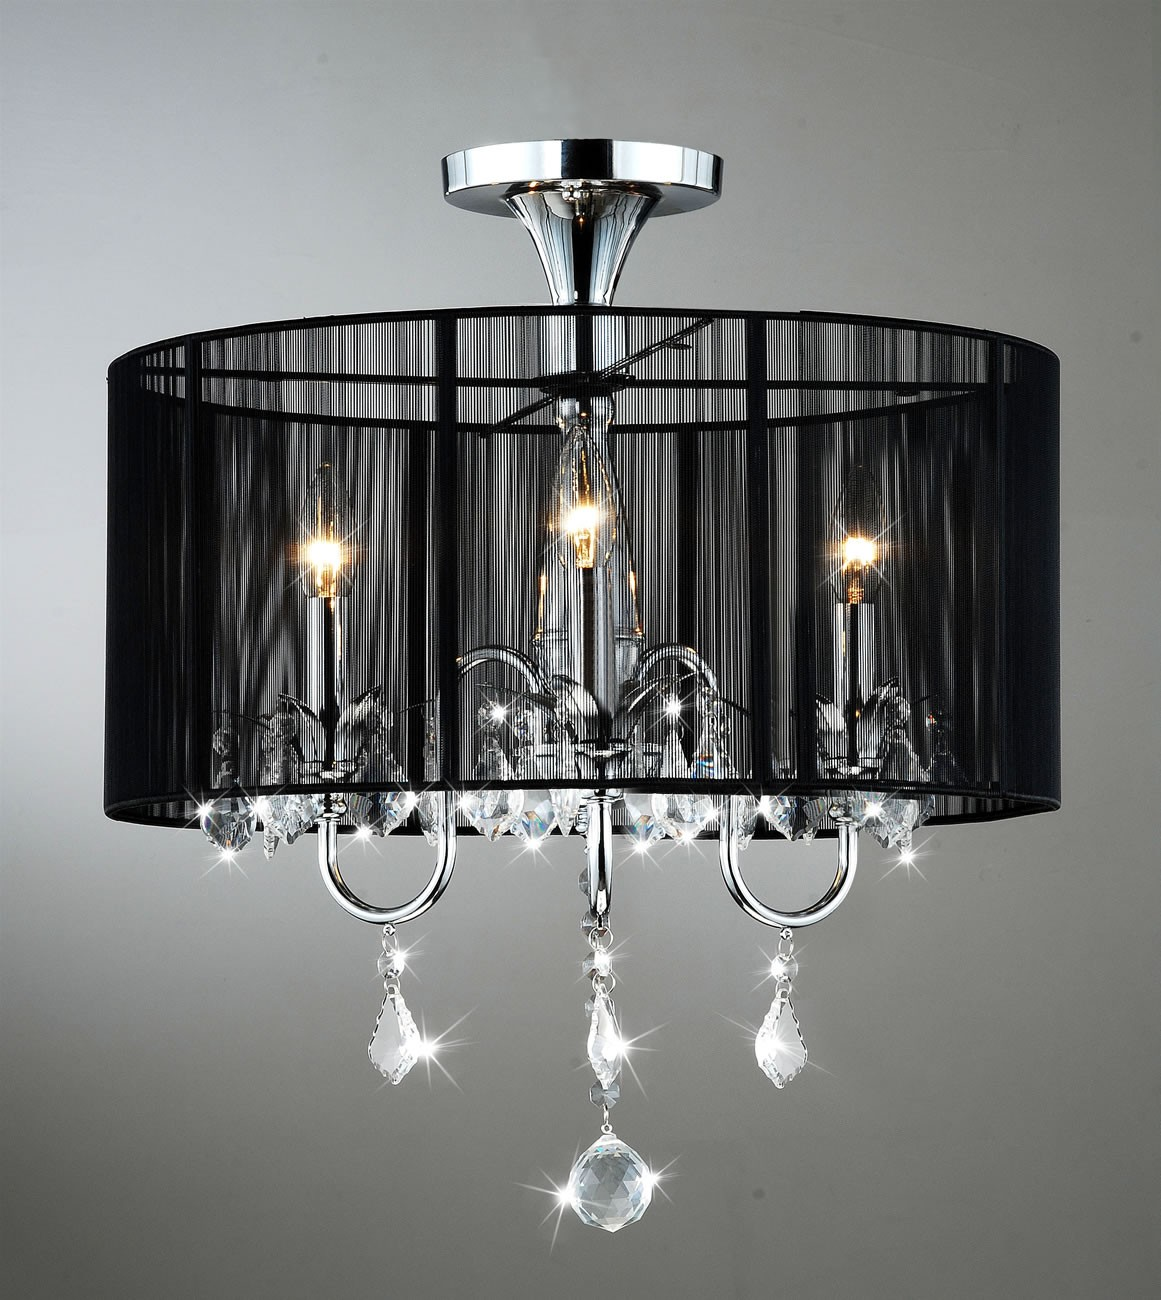 Aubree 3 lights black and chrome semi flush mount crystal aubree 3 lights black and chrome semi flush mount crystal chandelier 185w x arubaitofo Images